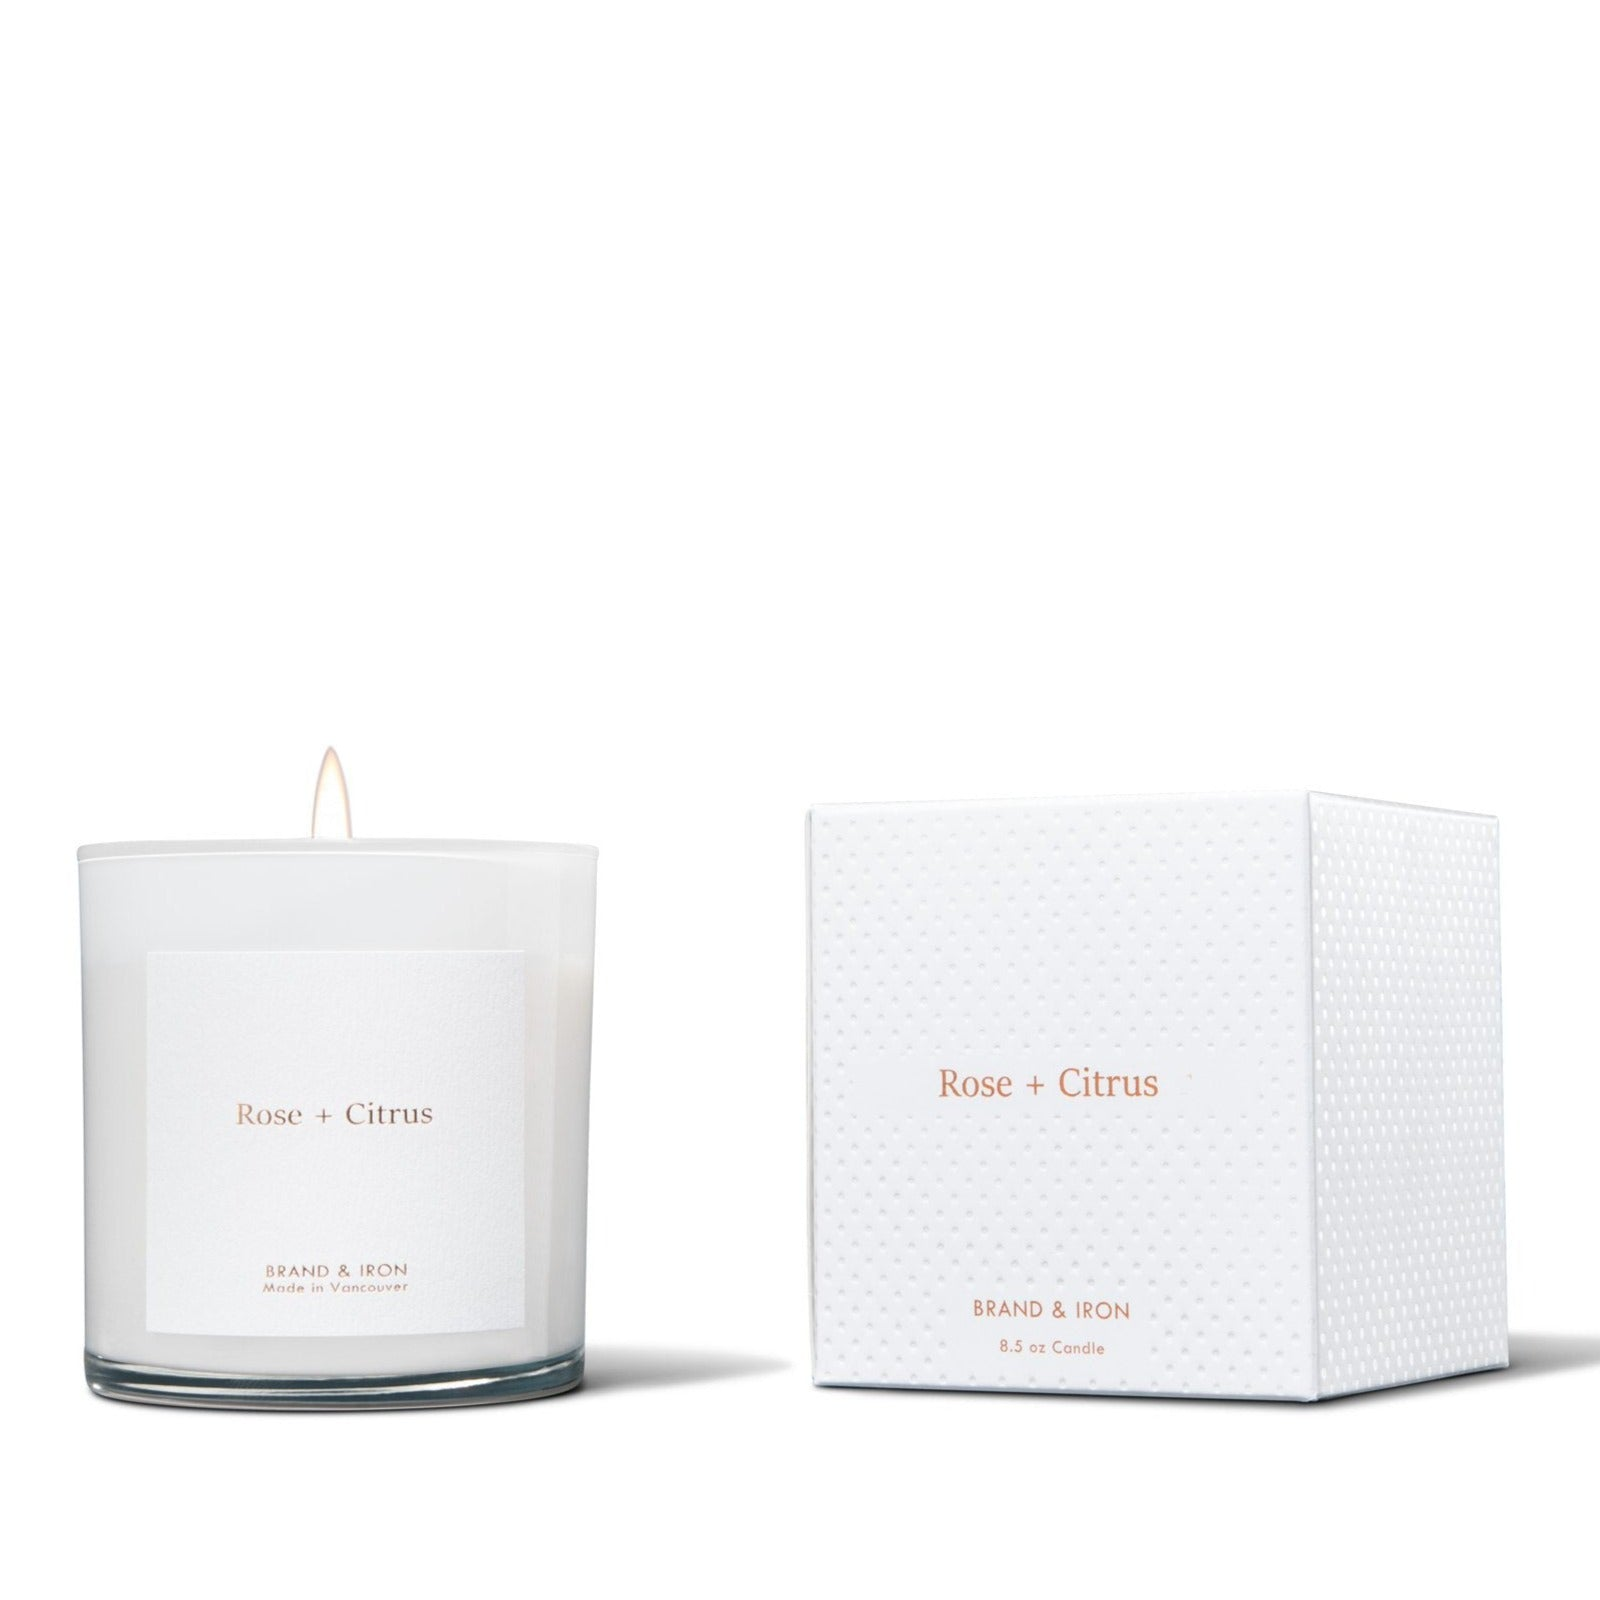 BRAND & IRON - HOME SERIES ROSE & CITRUS CANDLE